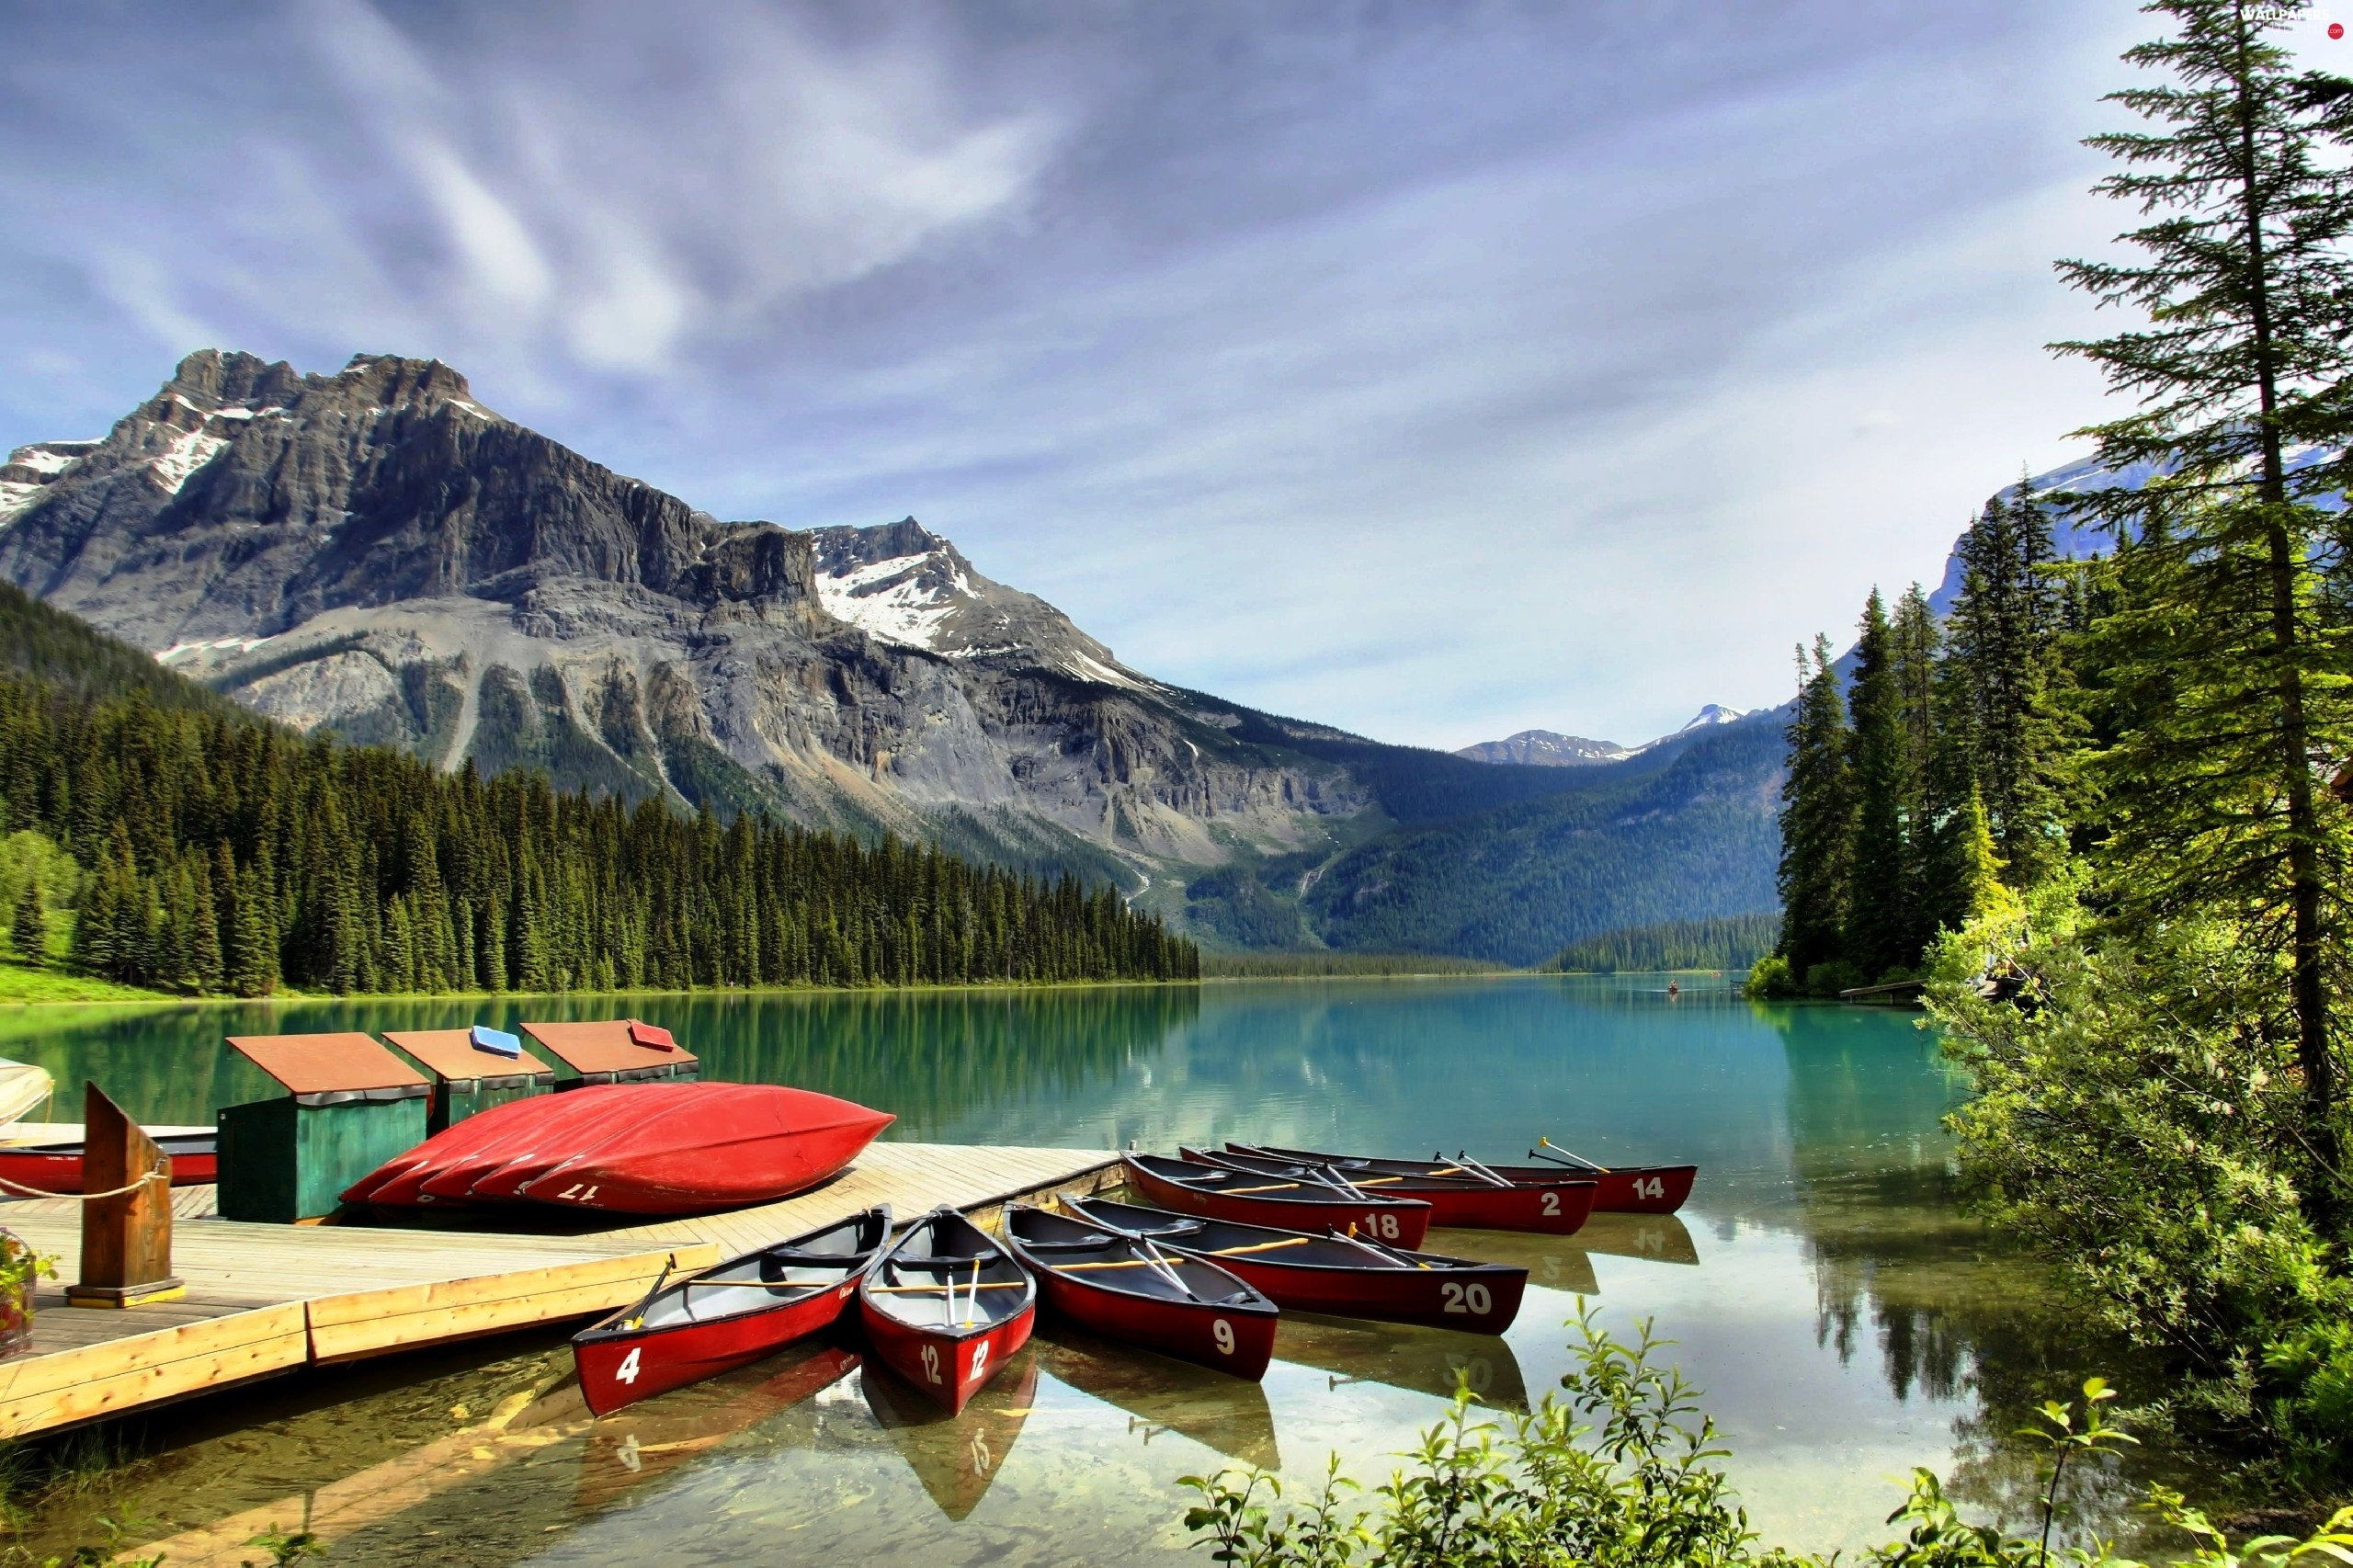 esmerald, lake, Mountains, Kayaks, Canada, Platform